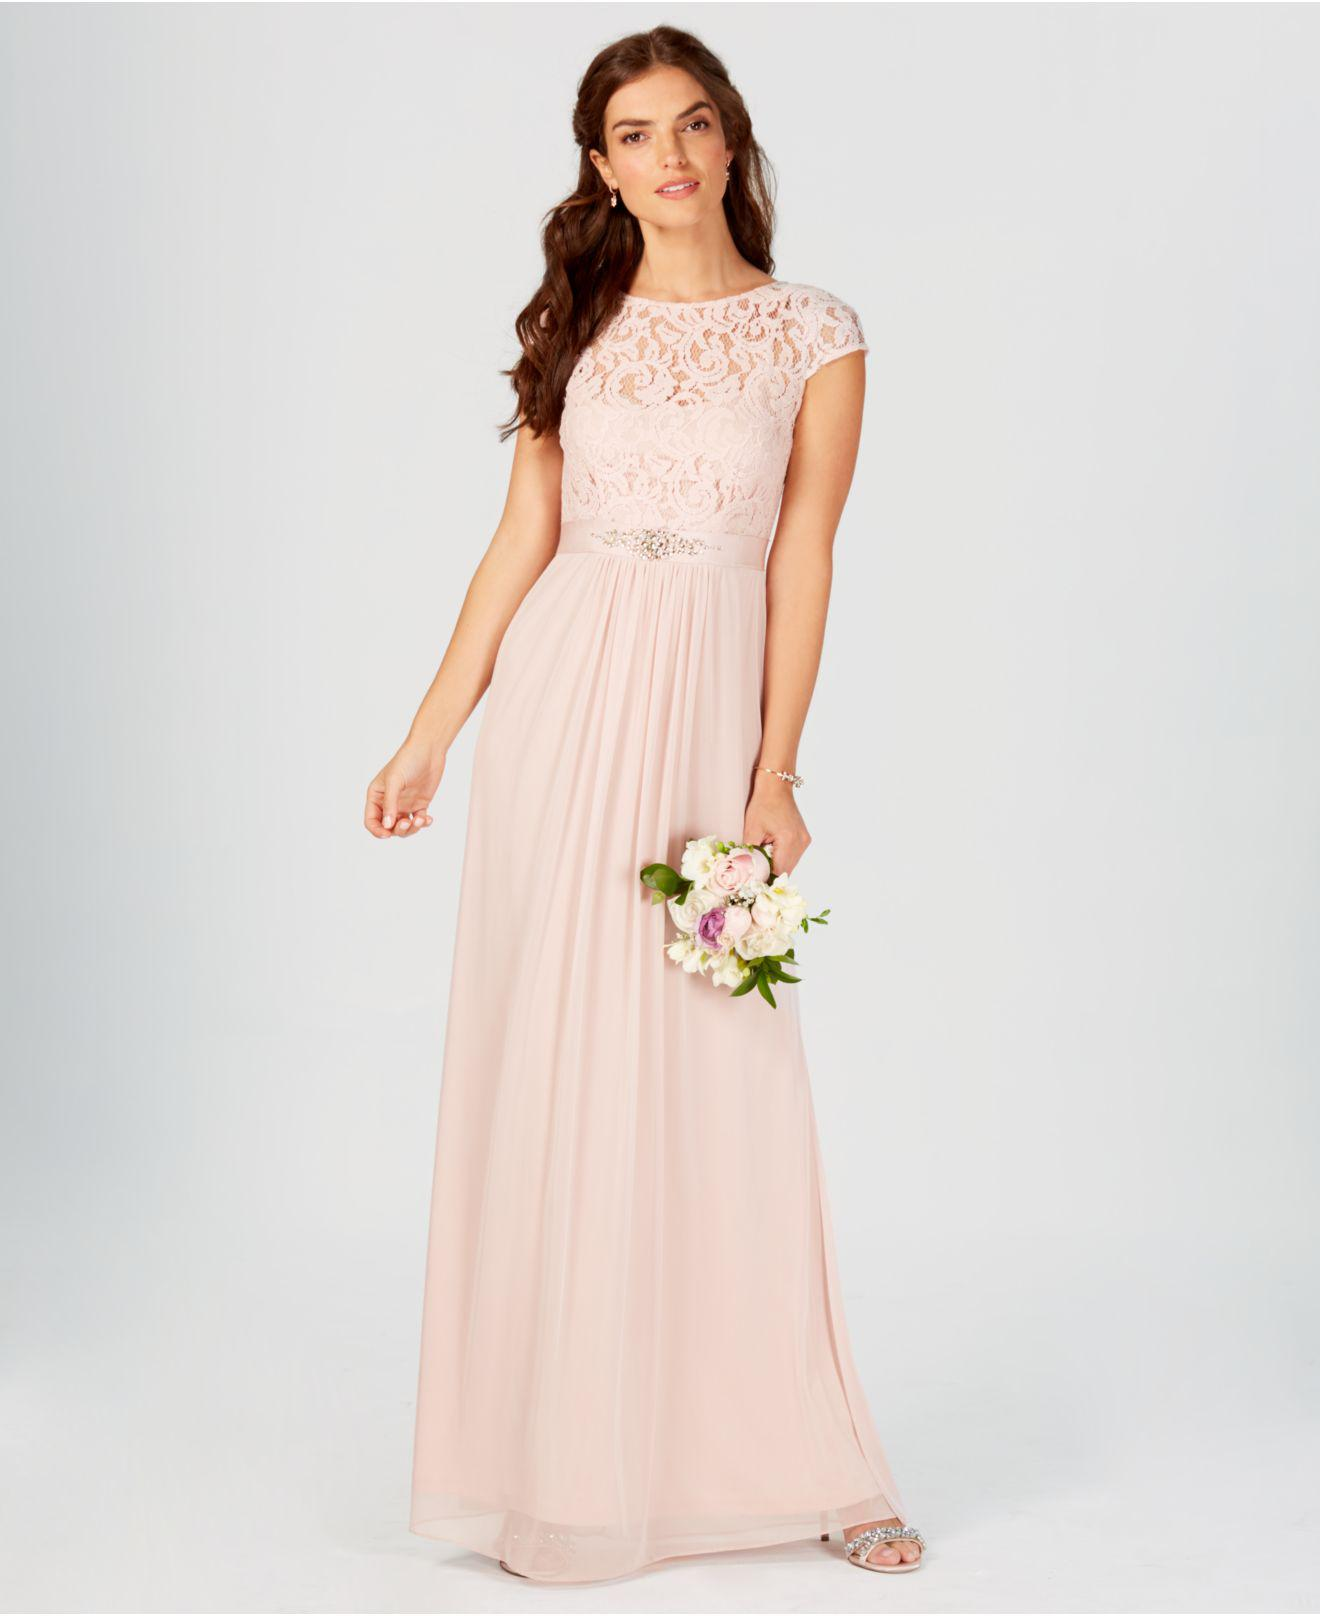 249801f591d7 Lyst - Adrianna Papell Illusion Lace Gown in Pink